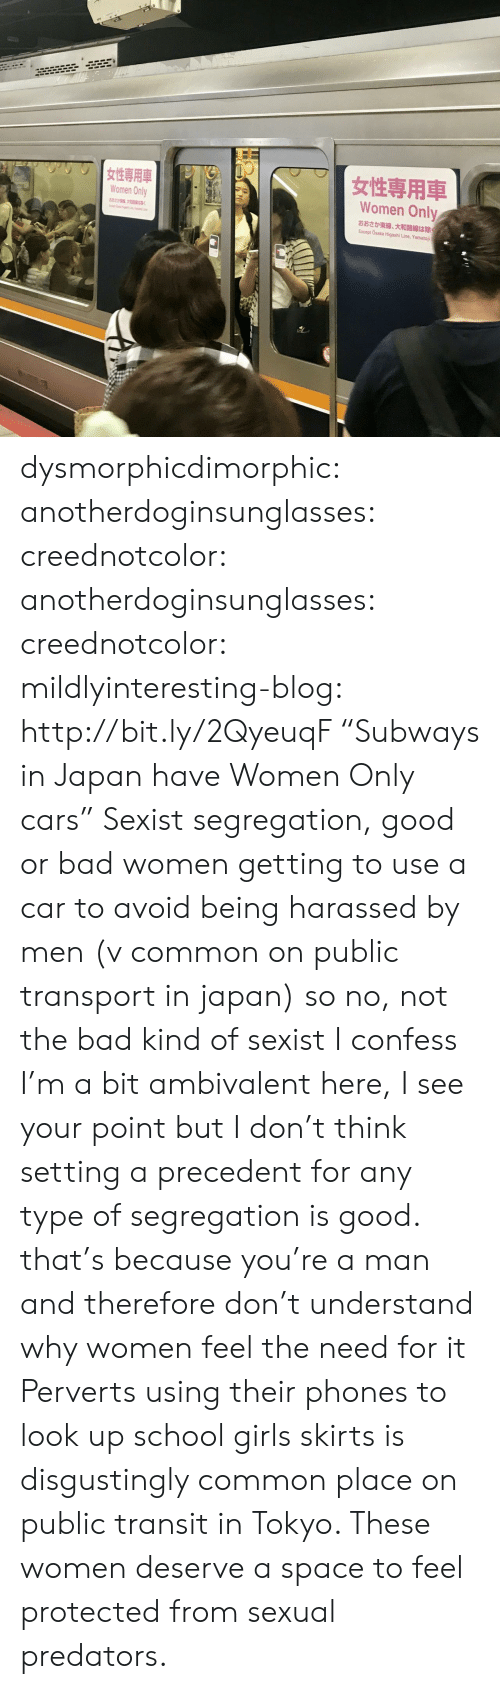 "Bad, Cars, and Girls: Women Only  Women Only  882  K  Except Osaka Higashi Line, Yamatoji dysmorphicdimorphic: anotherdoginsunglasses:  creednotcolor:   anotherdoginsunglasses:   creednotcolor:   mildlyinteresting-blog:  http://bit.ly/2QyeuqF ""Subways in Japan have Women Only cars""  Sexist segregation, good or bad   women getting to use a car to avoid being harassed by men (v common on public transport in japan) so no, not the bad kind of sexist    I confess I'm a bit ambivalent here, I see your point but I don't think setting a precedent for any type of segregation is good.   that's because you're a man and therefore don't understand why women feel the need for it   Perverts using their phones to look up school girls skirts is disgustingly common place on public transit in Tokyo. These women deserve a space to feel protected from sexual predators."